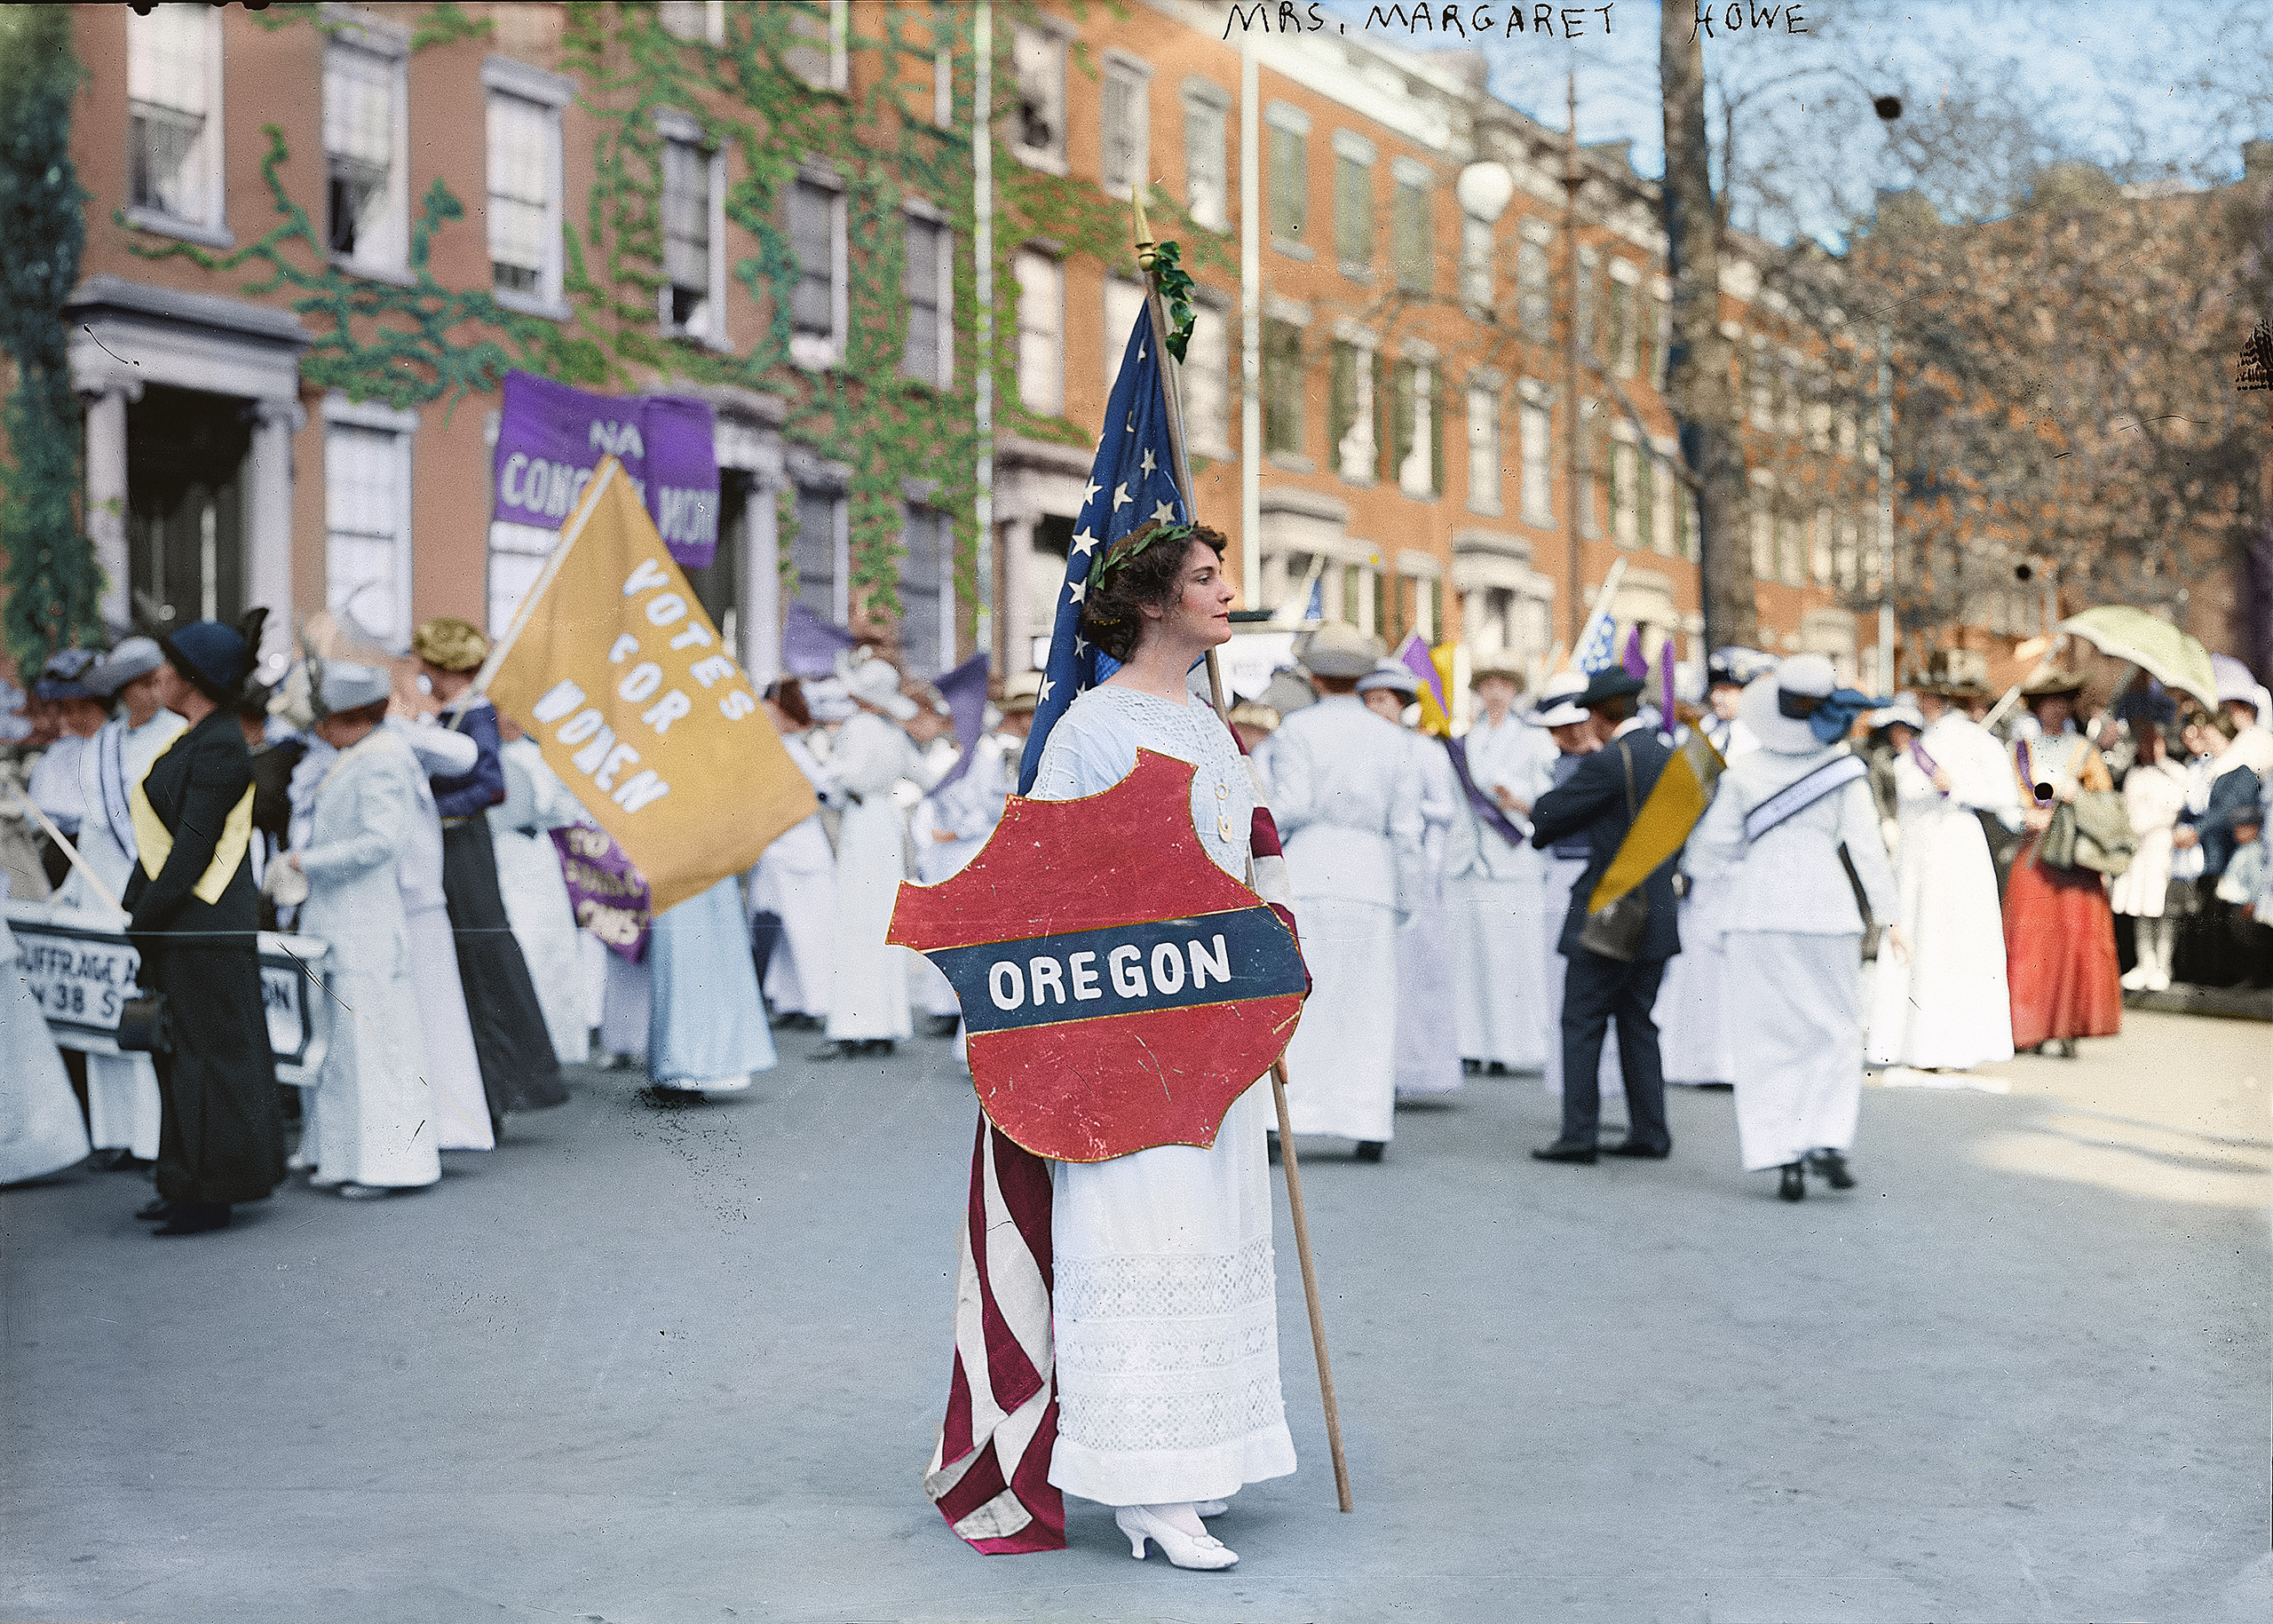 Margaret Vale Howe, a participant in the suffrage parade in Washington, D.C., March 1913.